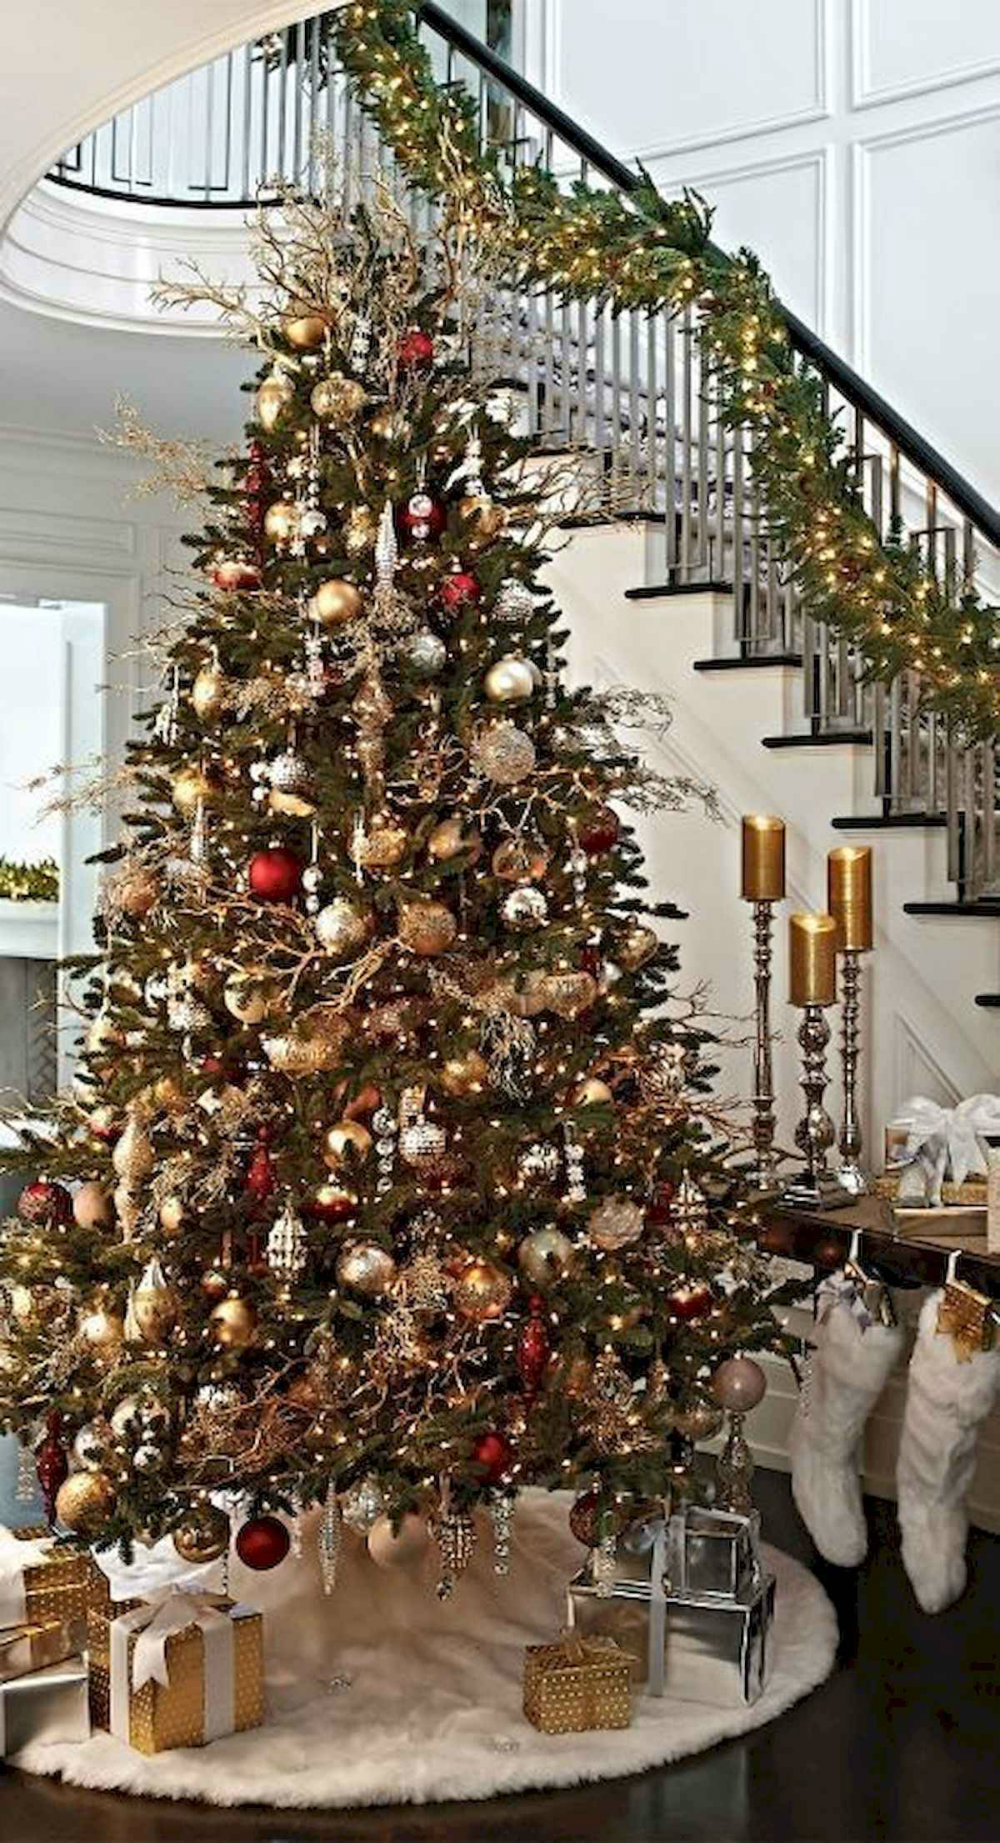 Christmas Decoration Ideas For An Elegant Season 06 christmas decoration ideas Christmas Decoration Ideas For An Elegant Season Christmas Decoration Ideas For An Elegant Season 06